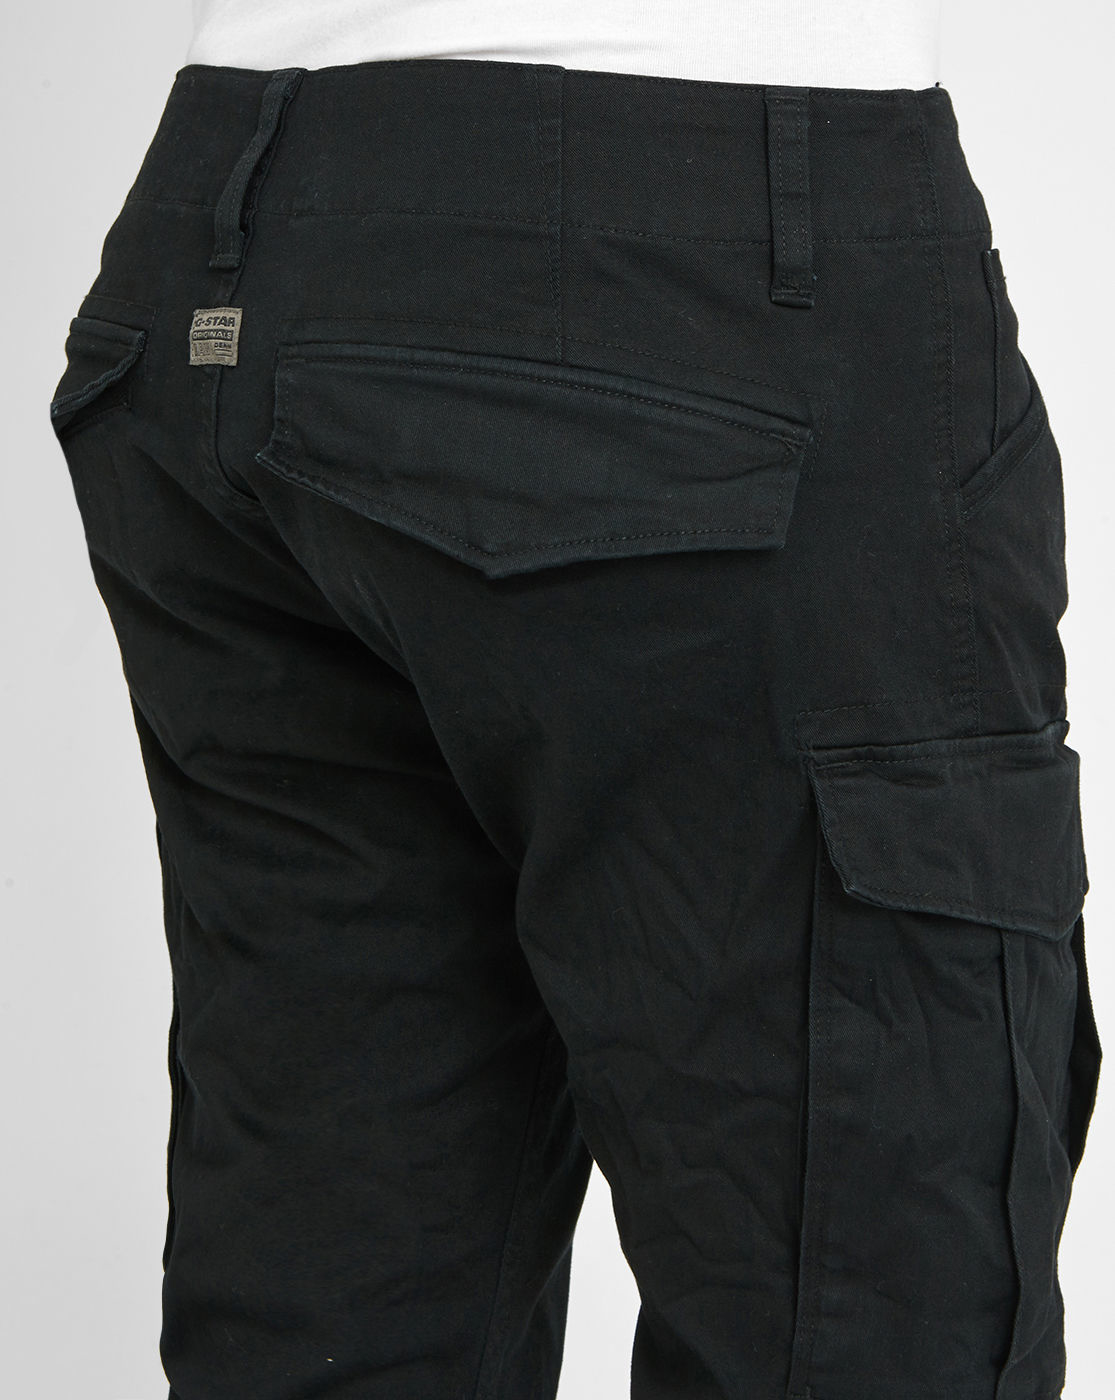 G-star raw Black Rovic Pr Stretch Slim-fit Cargo Pants in Black ...